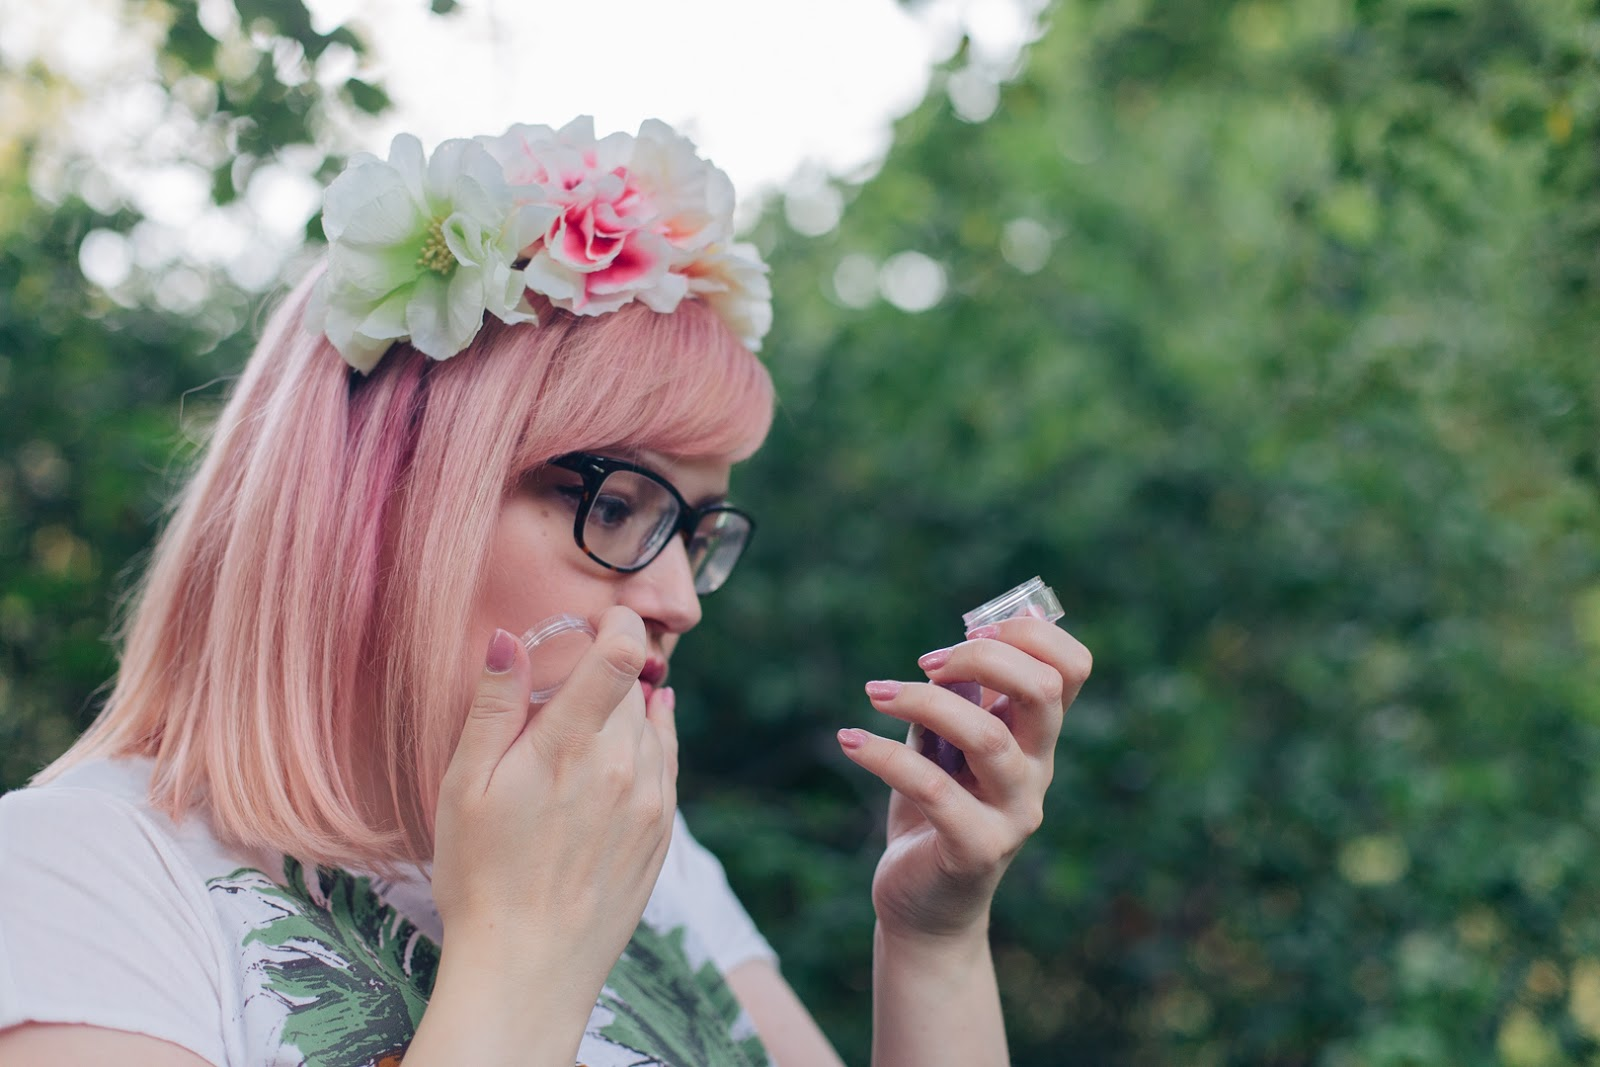 MUA, behind the scenes, natural daylight photography, Mint and Chillies photography, matching hair and nails, matchy matchy,